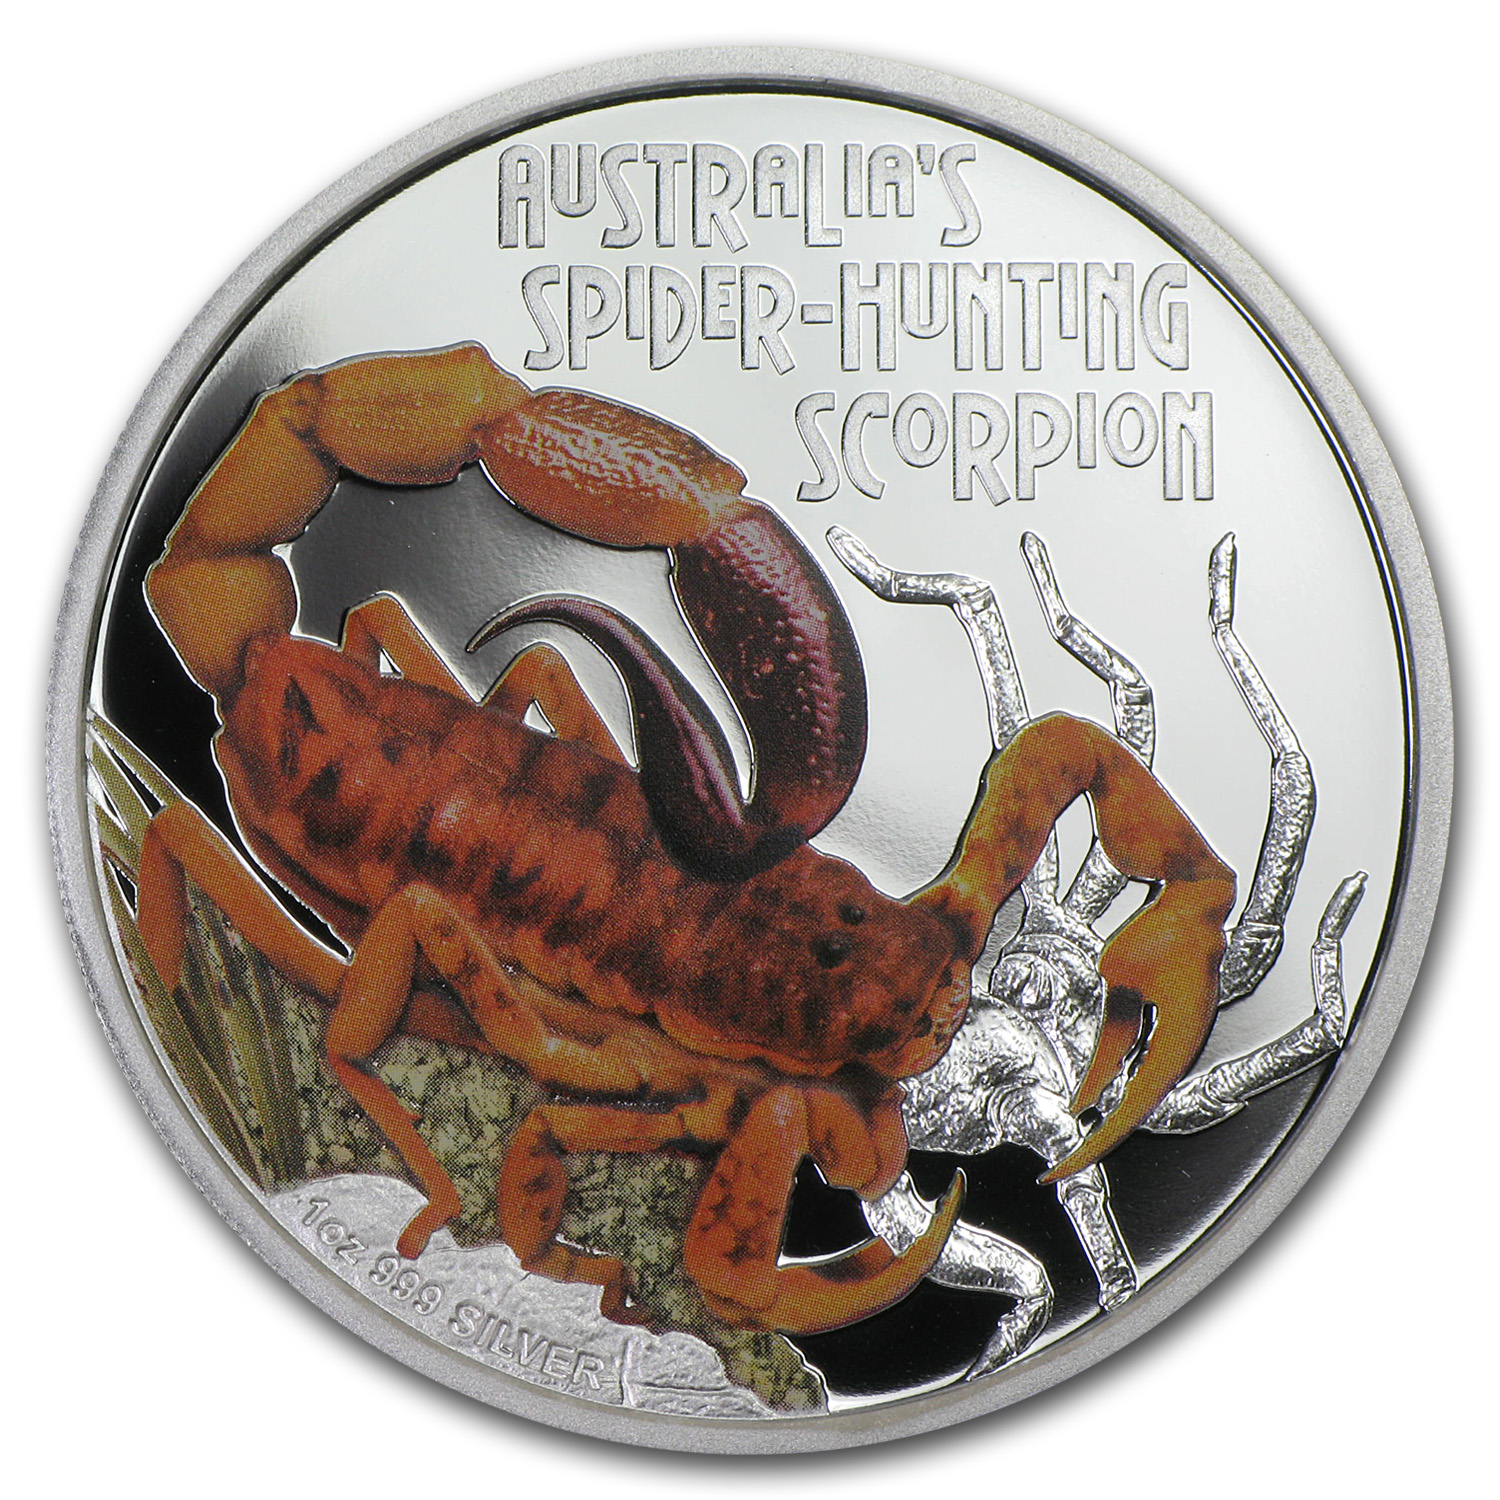 2014 1 oz Silver Australian Spider - Hunting Scorpion Proof